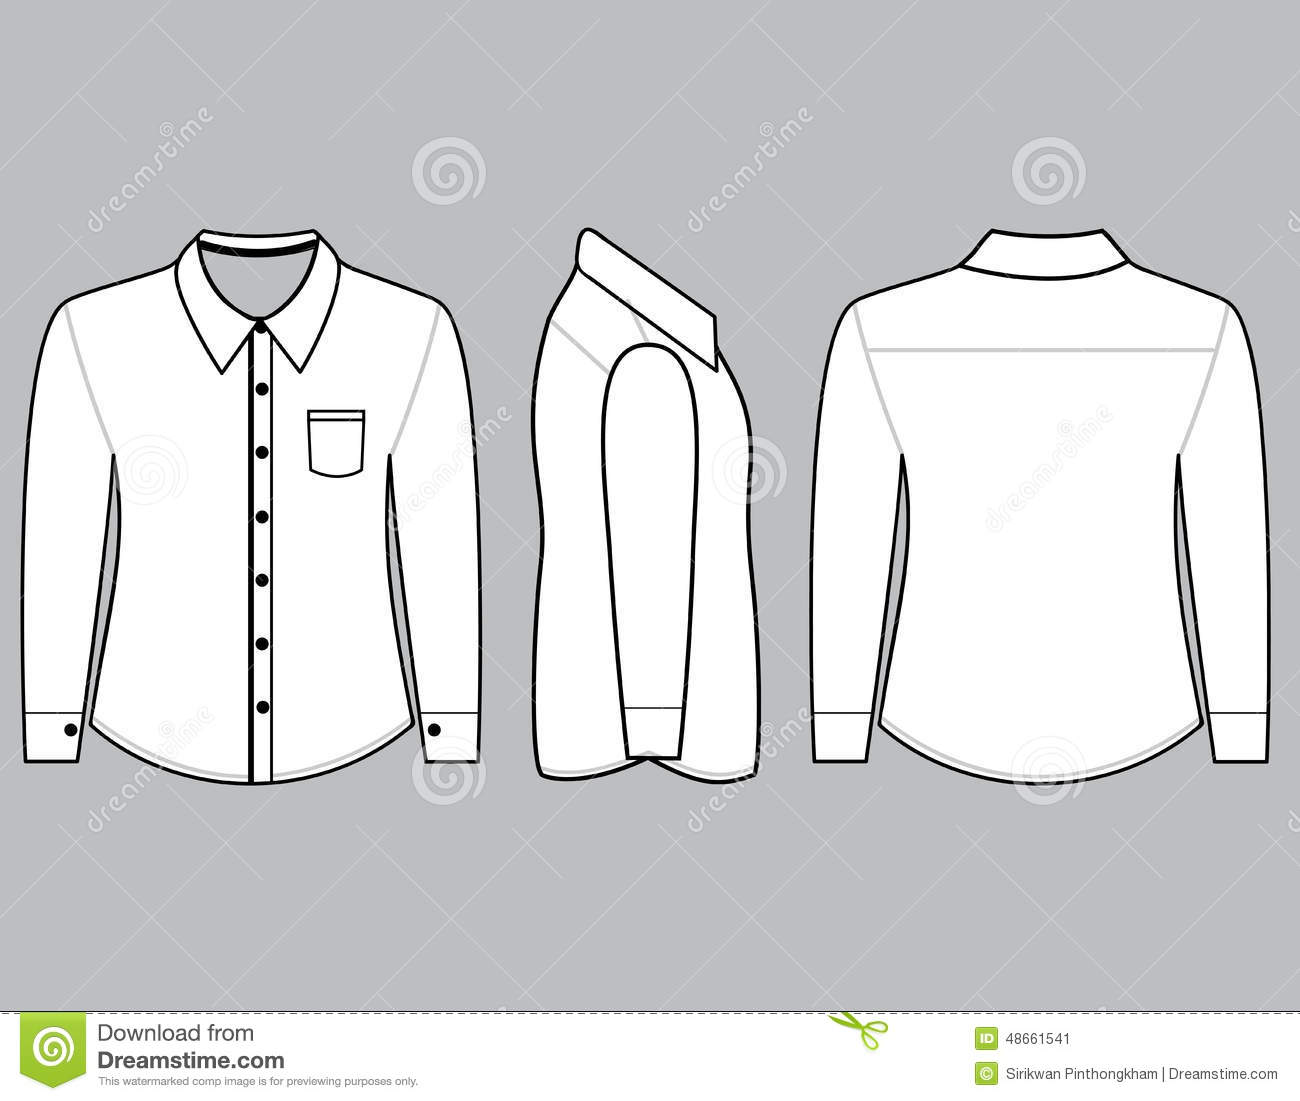 blank shirt with long sleeves template stock illustration illustration of photo apparel 48661541. Black Bedroom Furniture Sets. Home Design Ideas